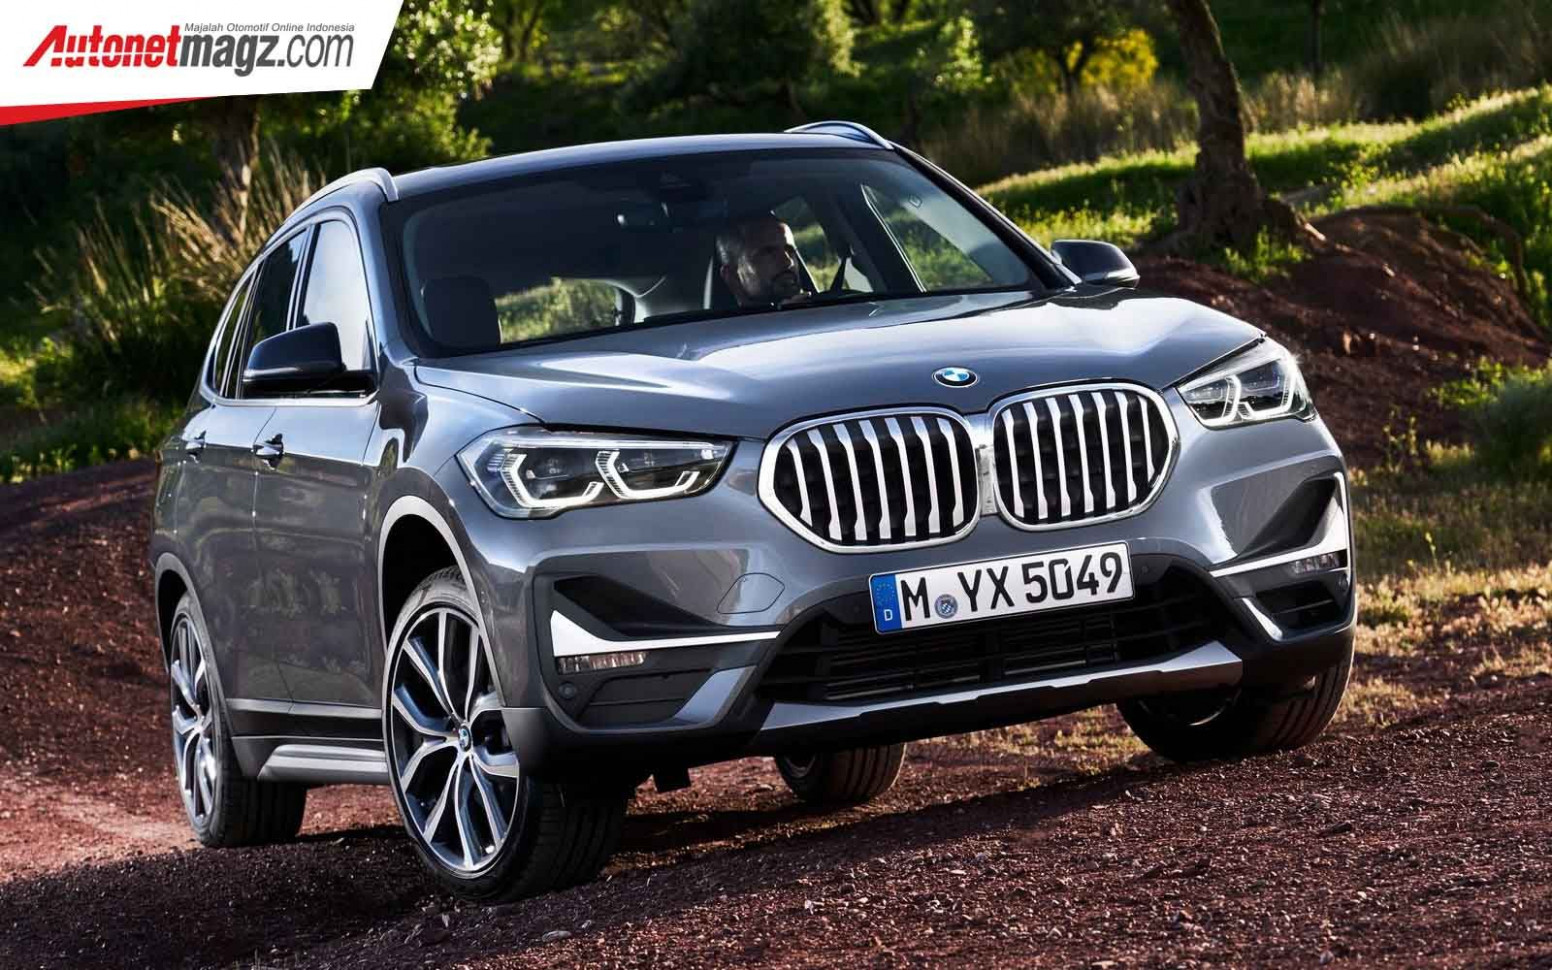 8+ 8 BMW x8 harga Release Date, Price and Review